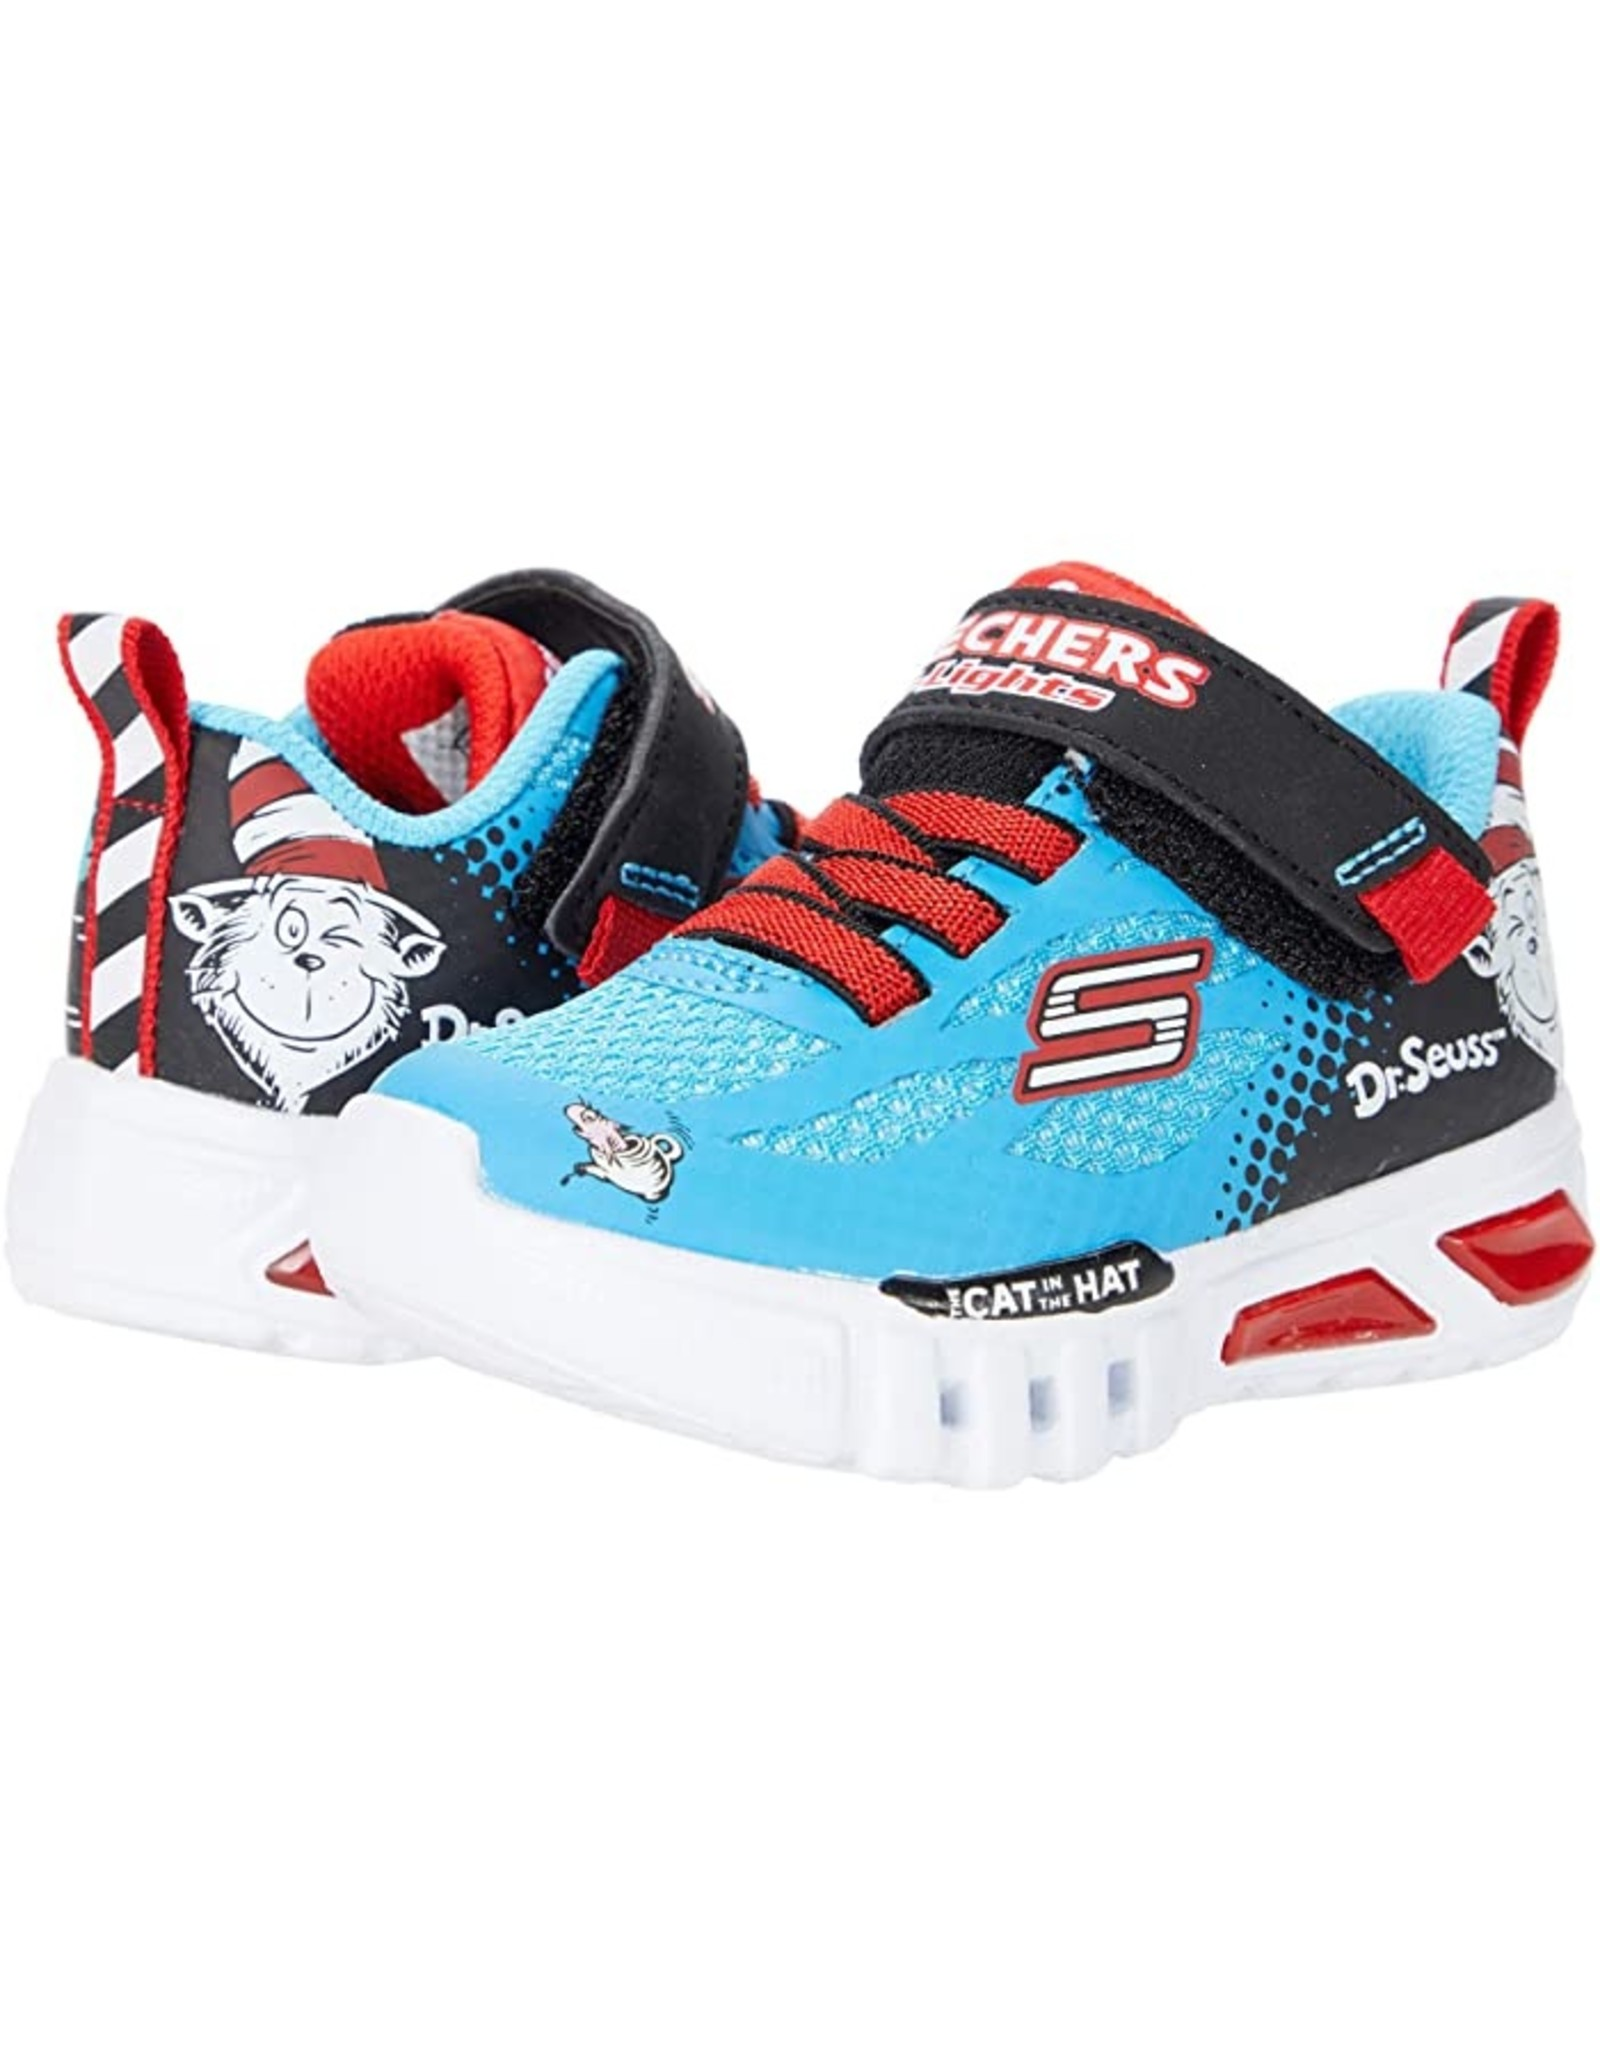 SKECHERS DR. SEUSS LIGHTED THINGS